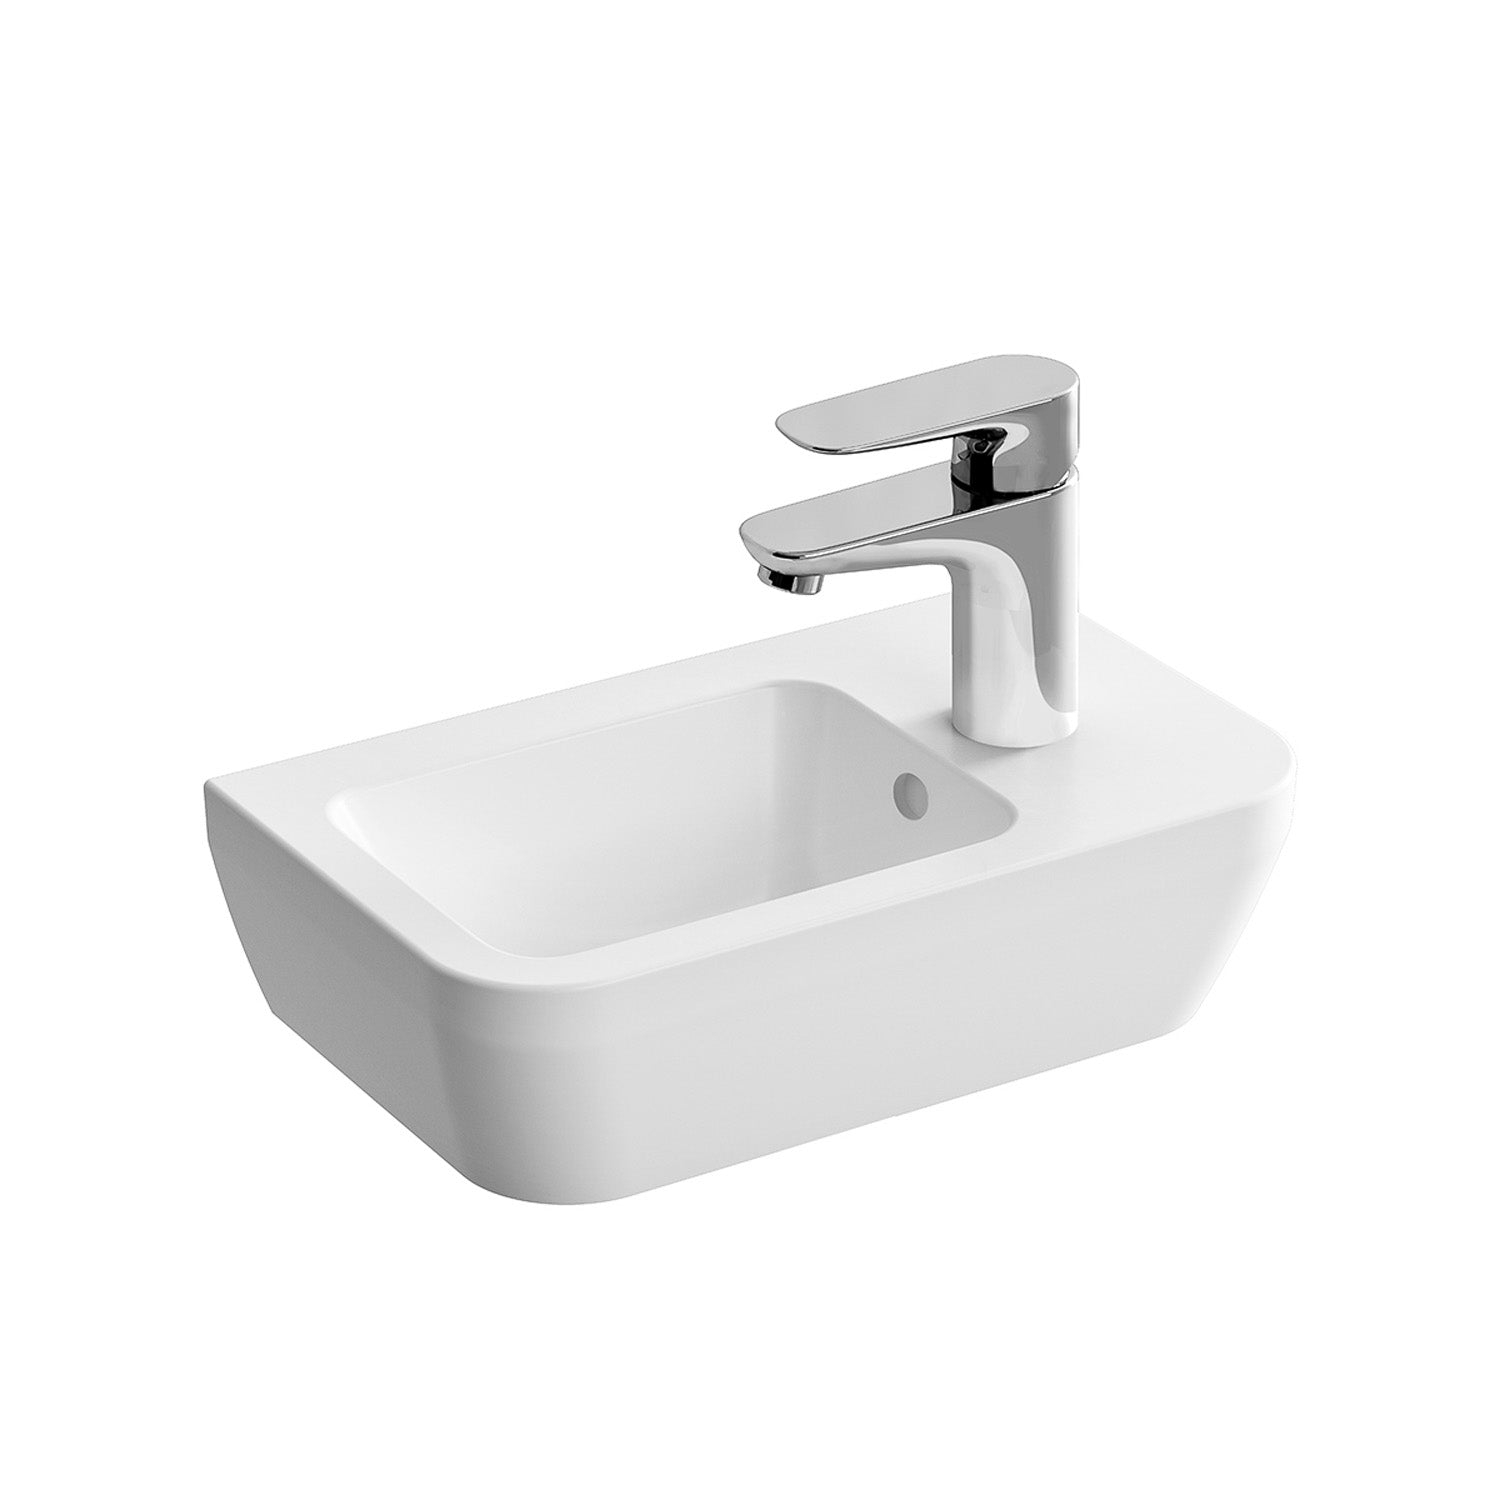 Right handed Consilio Handrinse Cloakroom Basin with one tap hole and an overflow on a white background